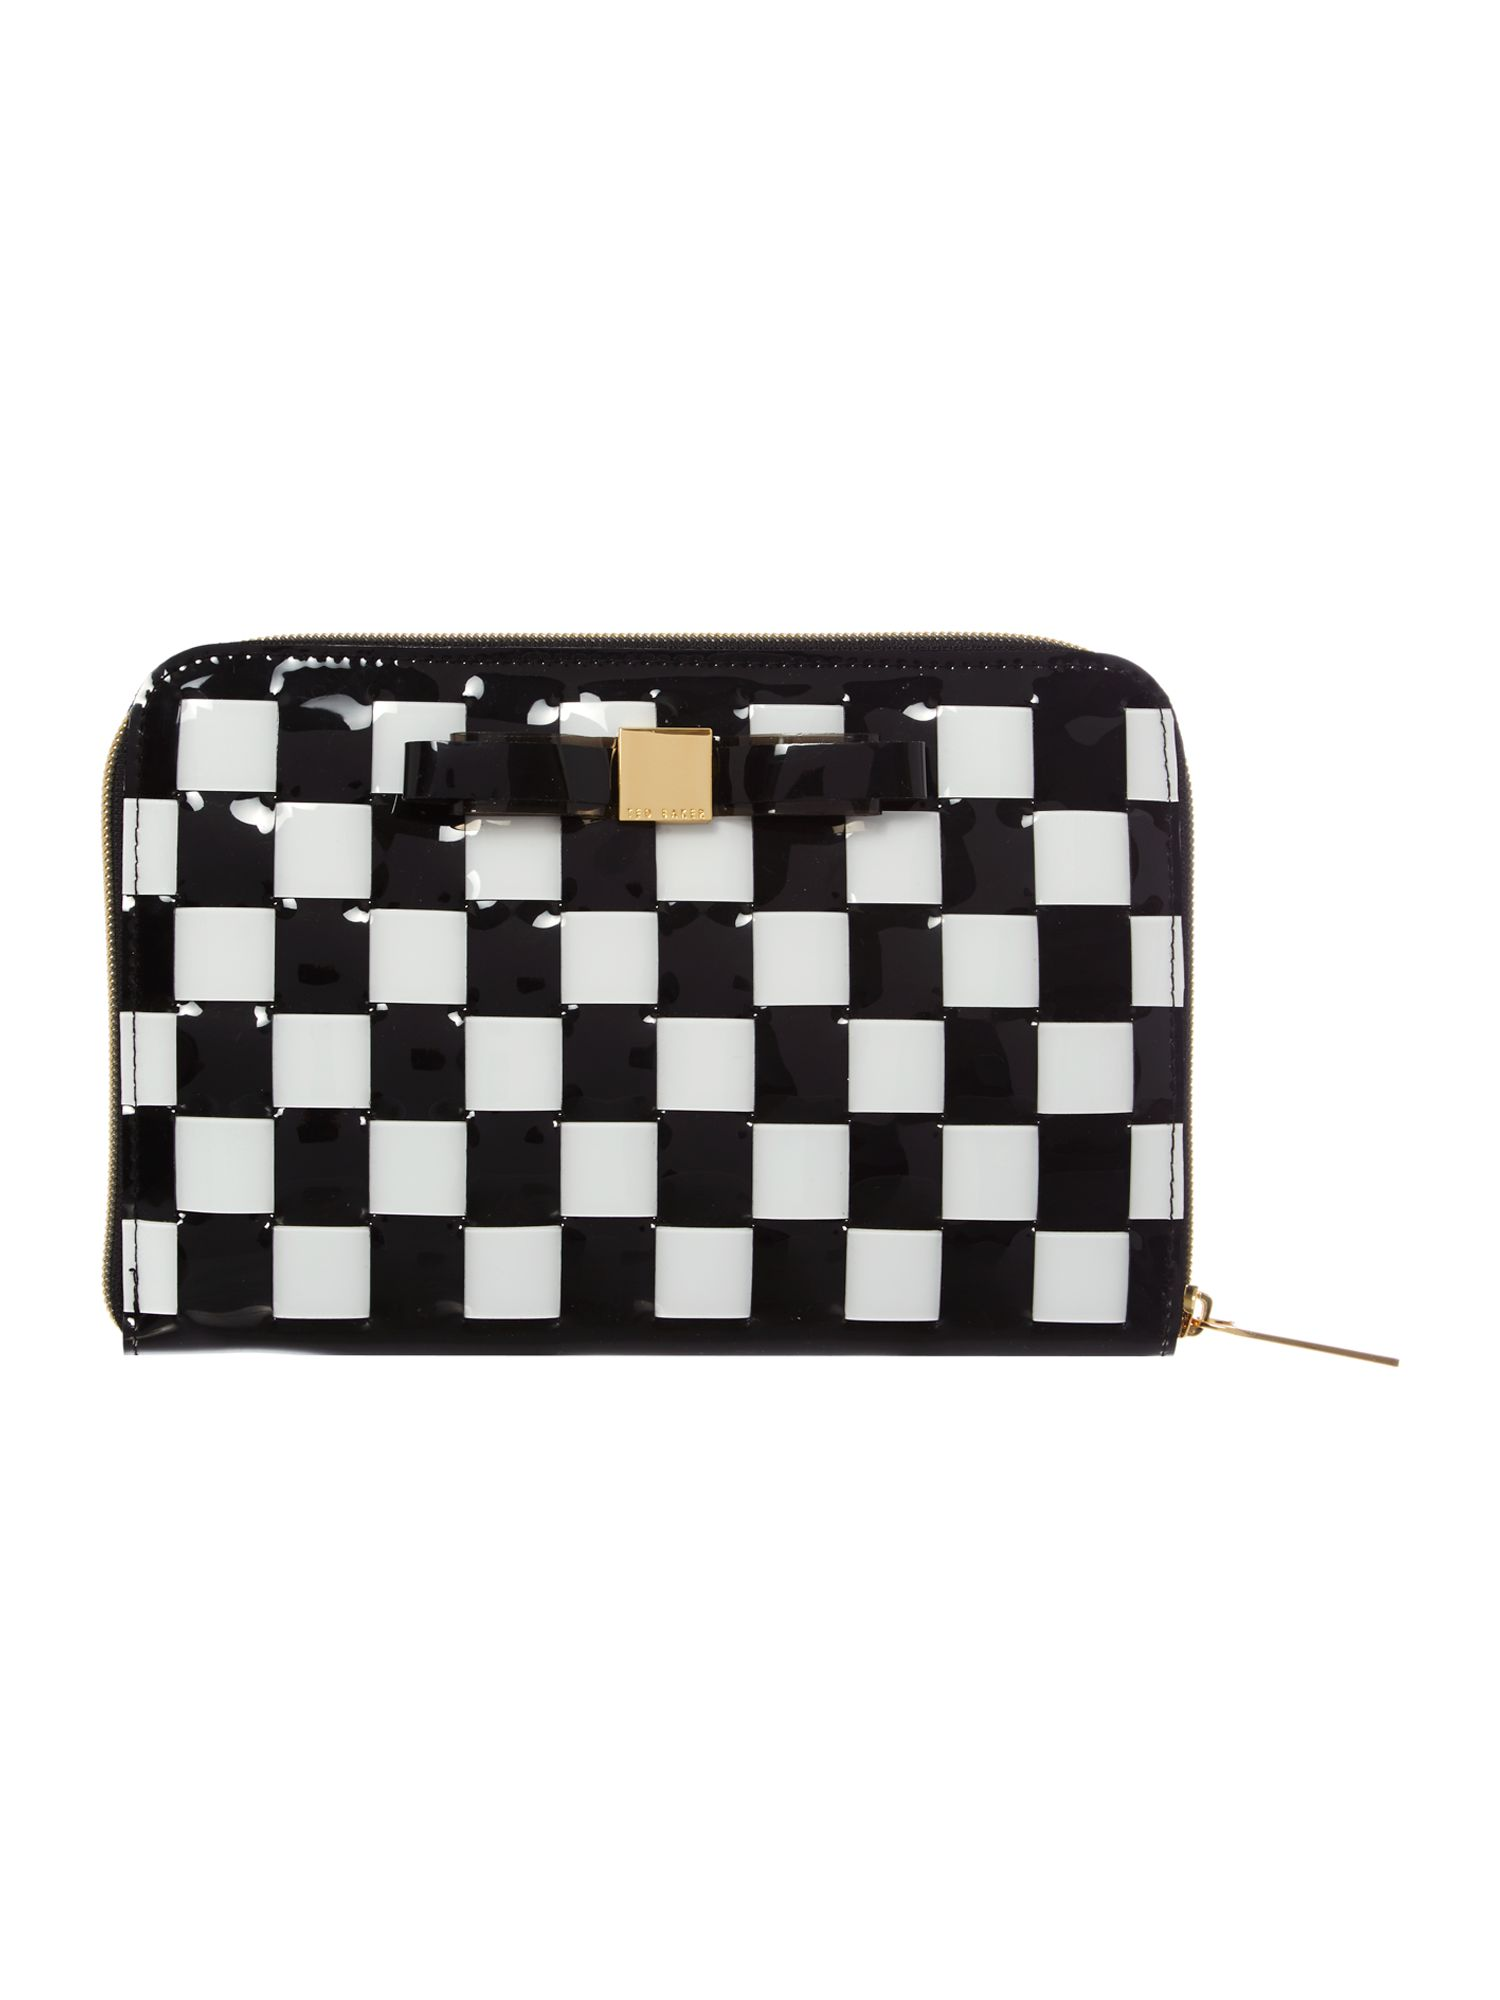 Black bow weave ipad mini case